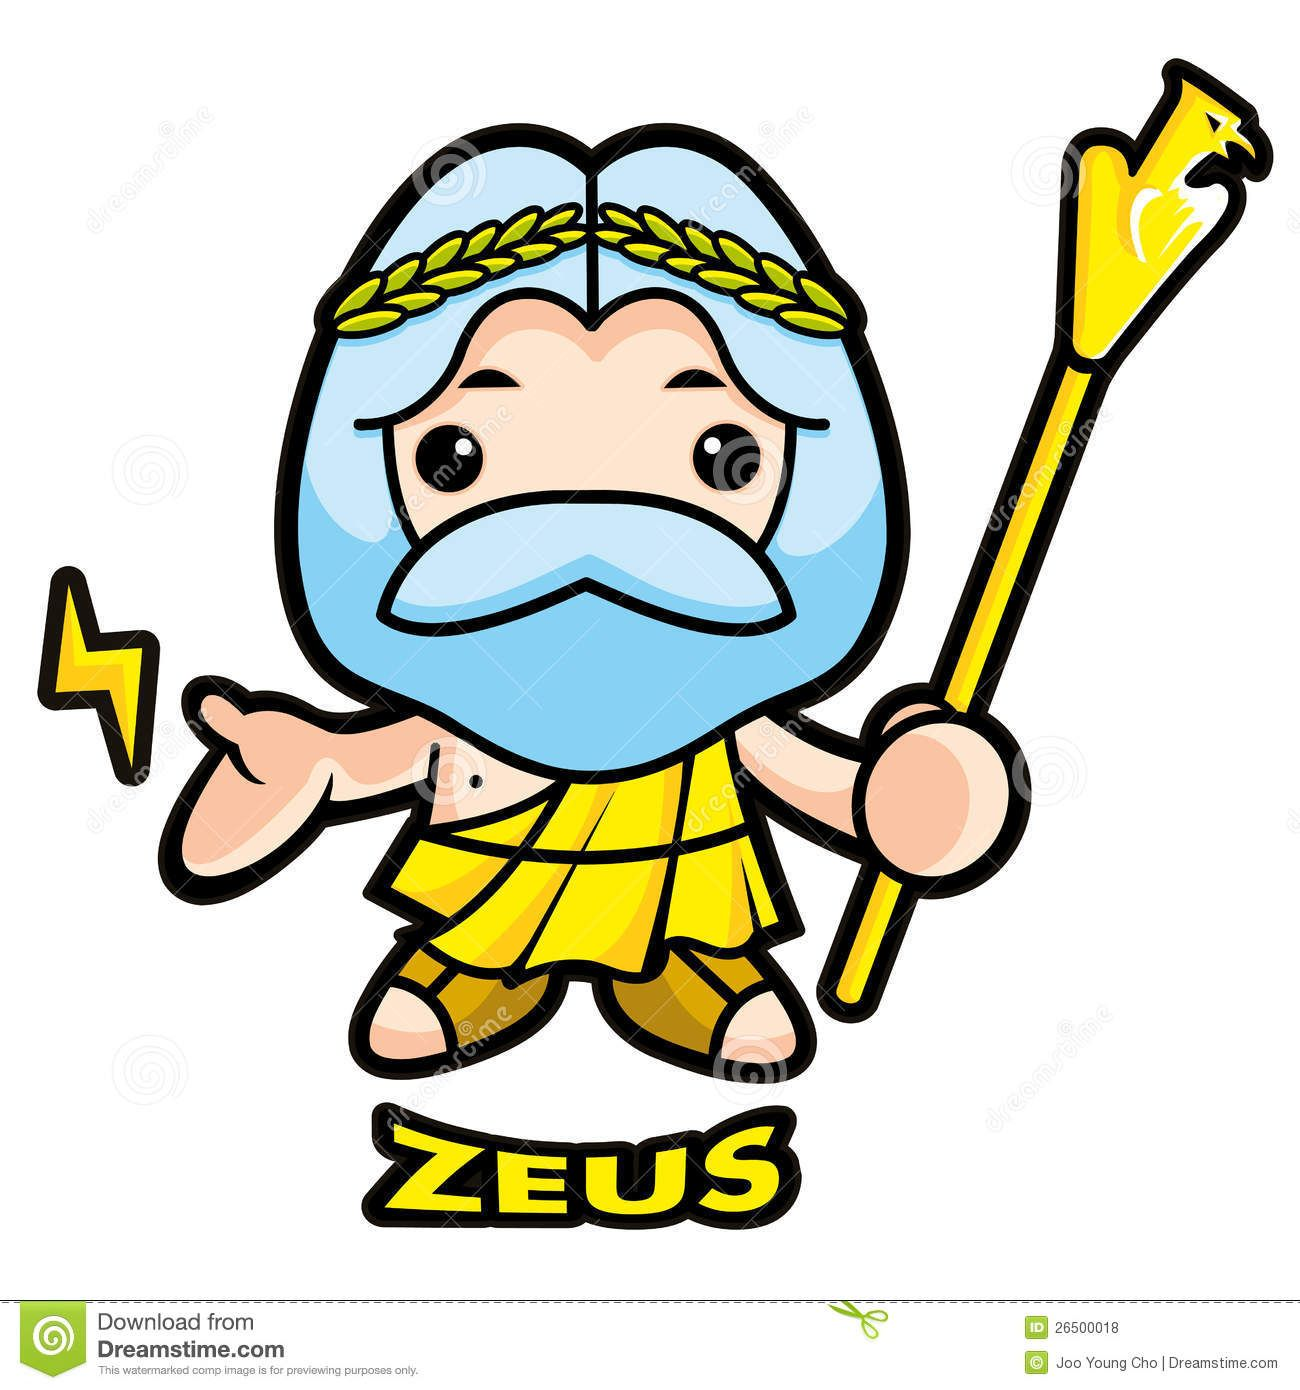 freeuse Stock photos images pictures. Zeus clipart god thunder.